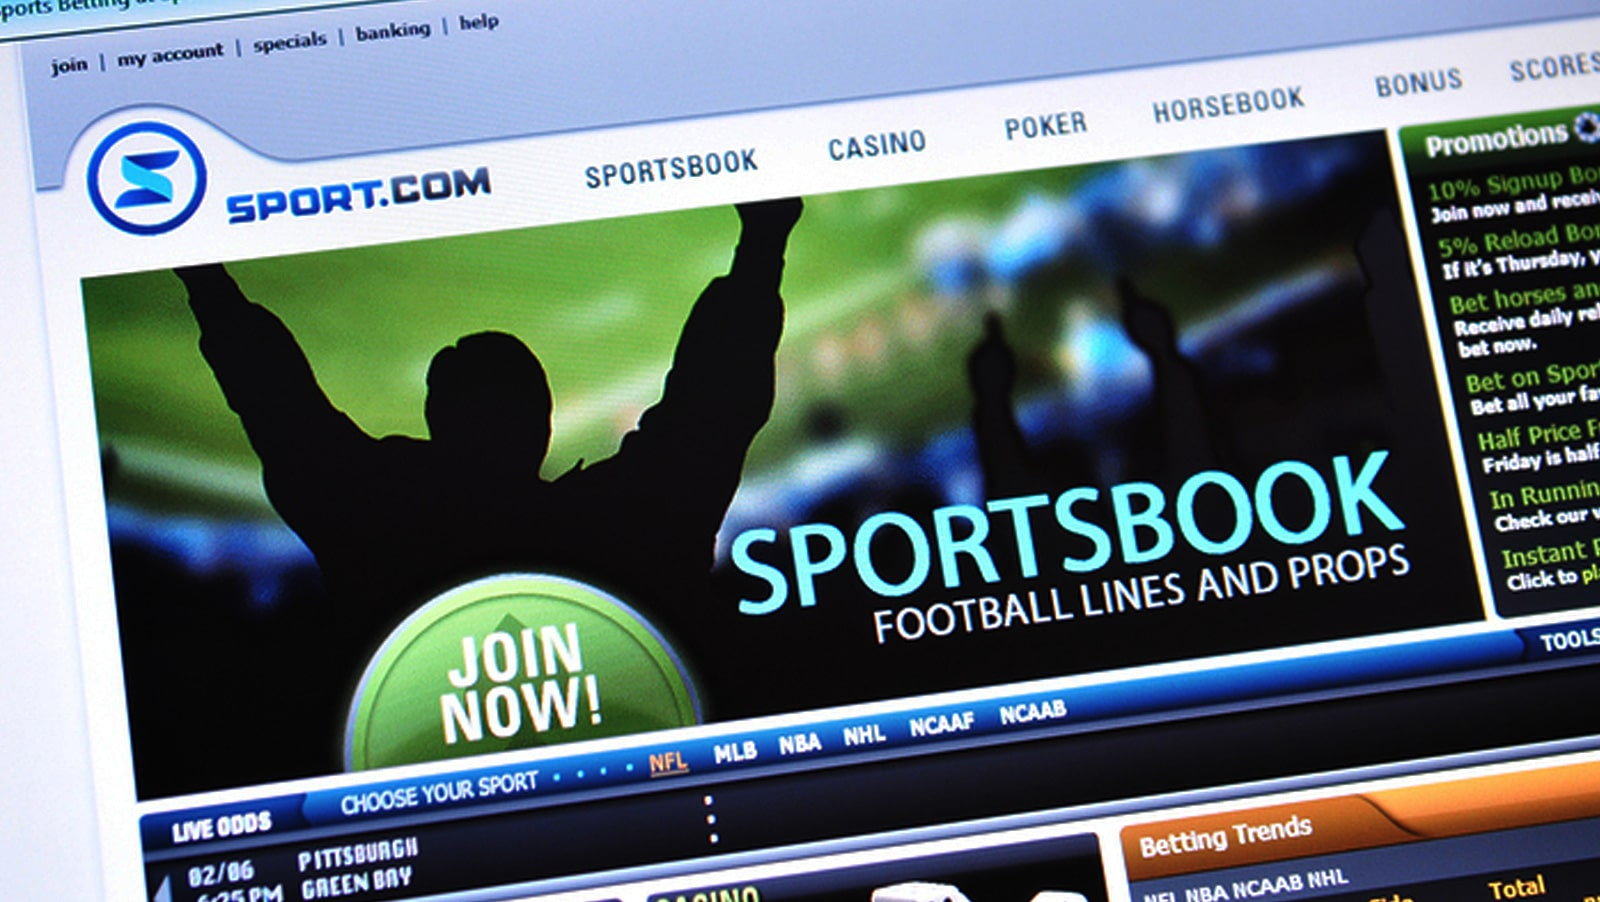 sportsbook-handle19-moves-forward-with-gambling-plans-in-dc